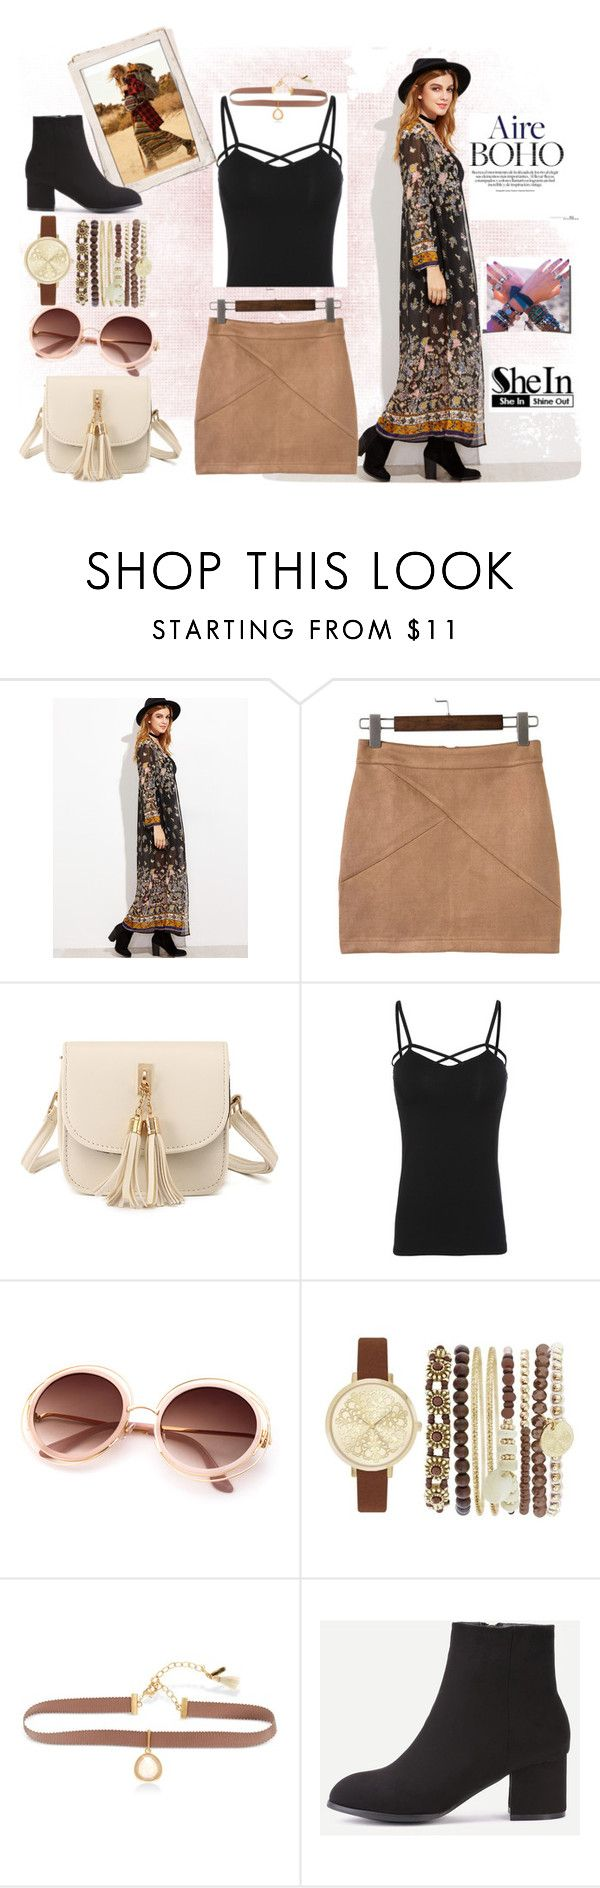 """Boho"" by kat-van-d ❤ liked on Polyvore featuring Jessica Carlyle, Lonna & Lilly, Gipsy and shein"